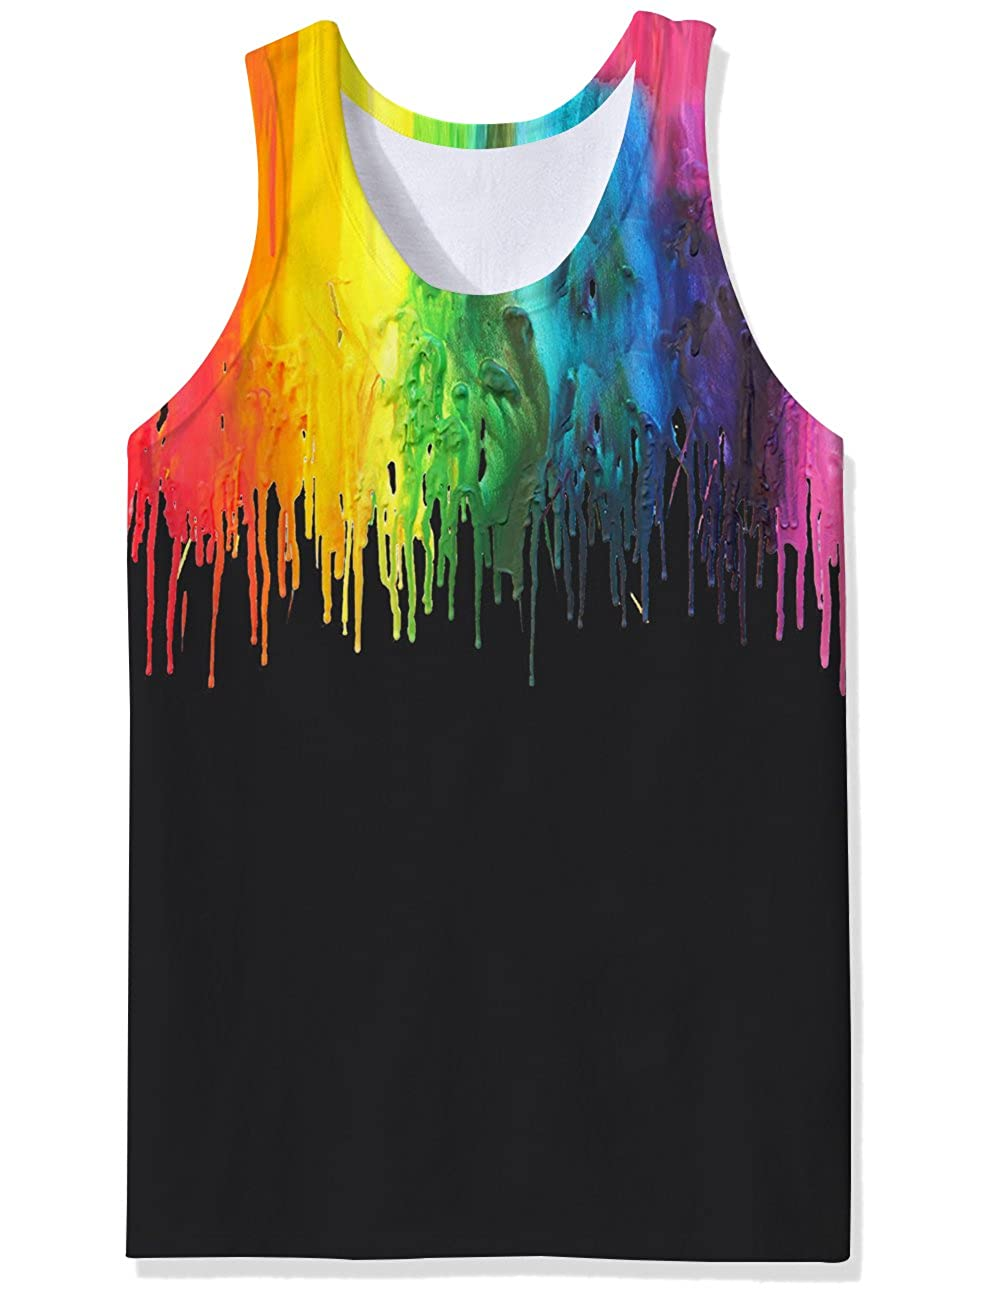 TUONROAD Vest Tops for Men Funny 3D Print Gym Tank Top Light Sleeveless Summer Casual Boys Vest Tops Round Neck Running Sports Tank-Top Slim Fit Holiday Beach Vest Top S XXL